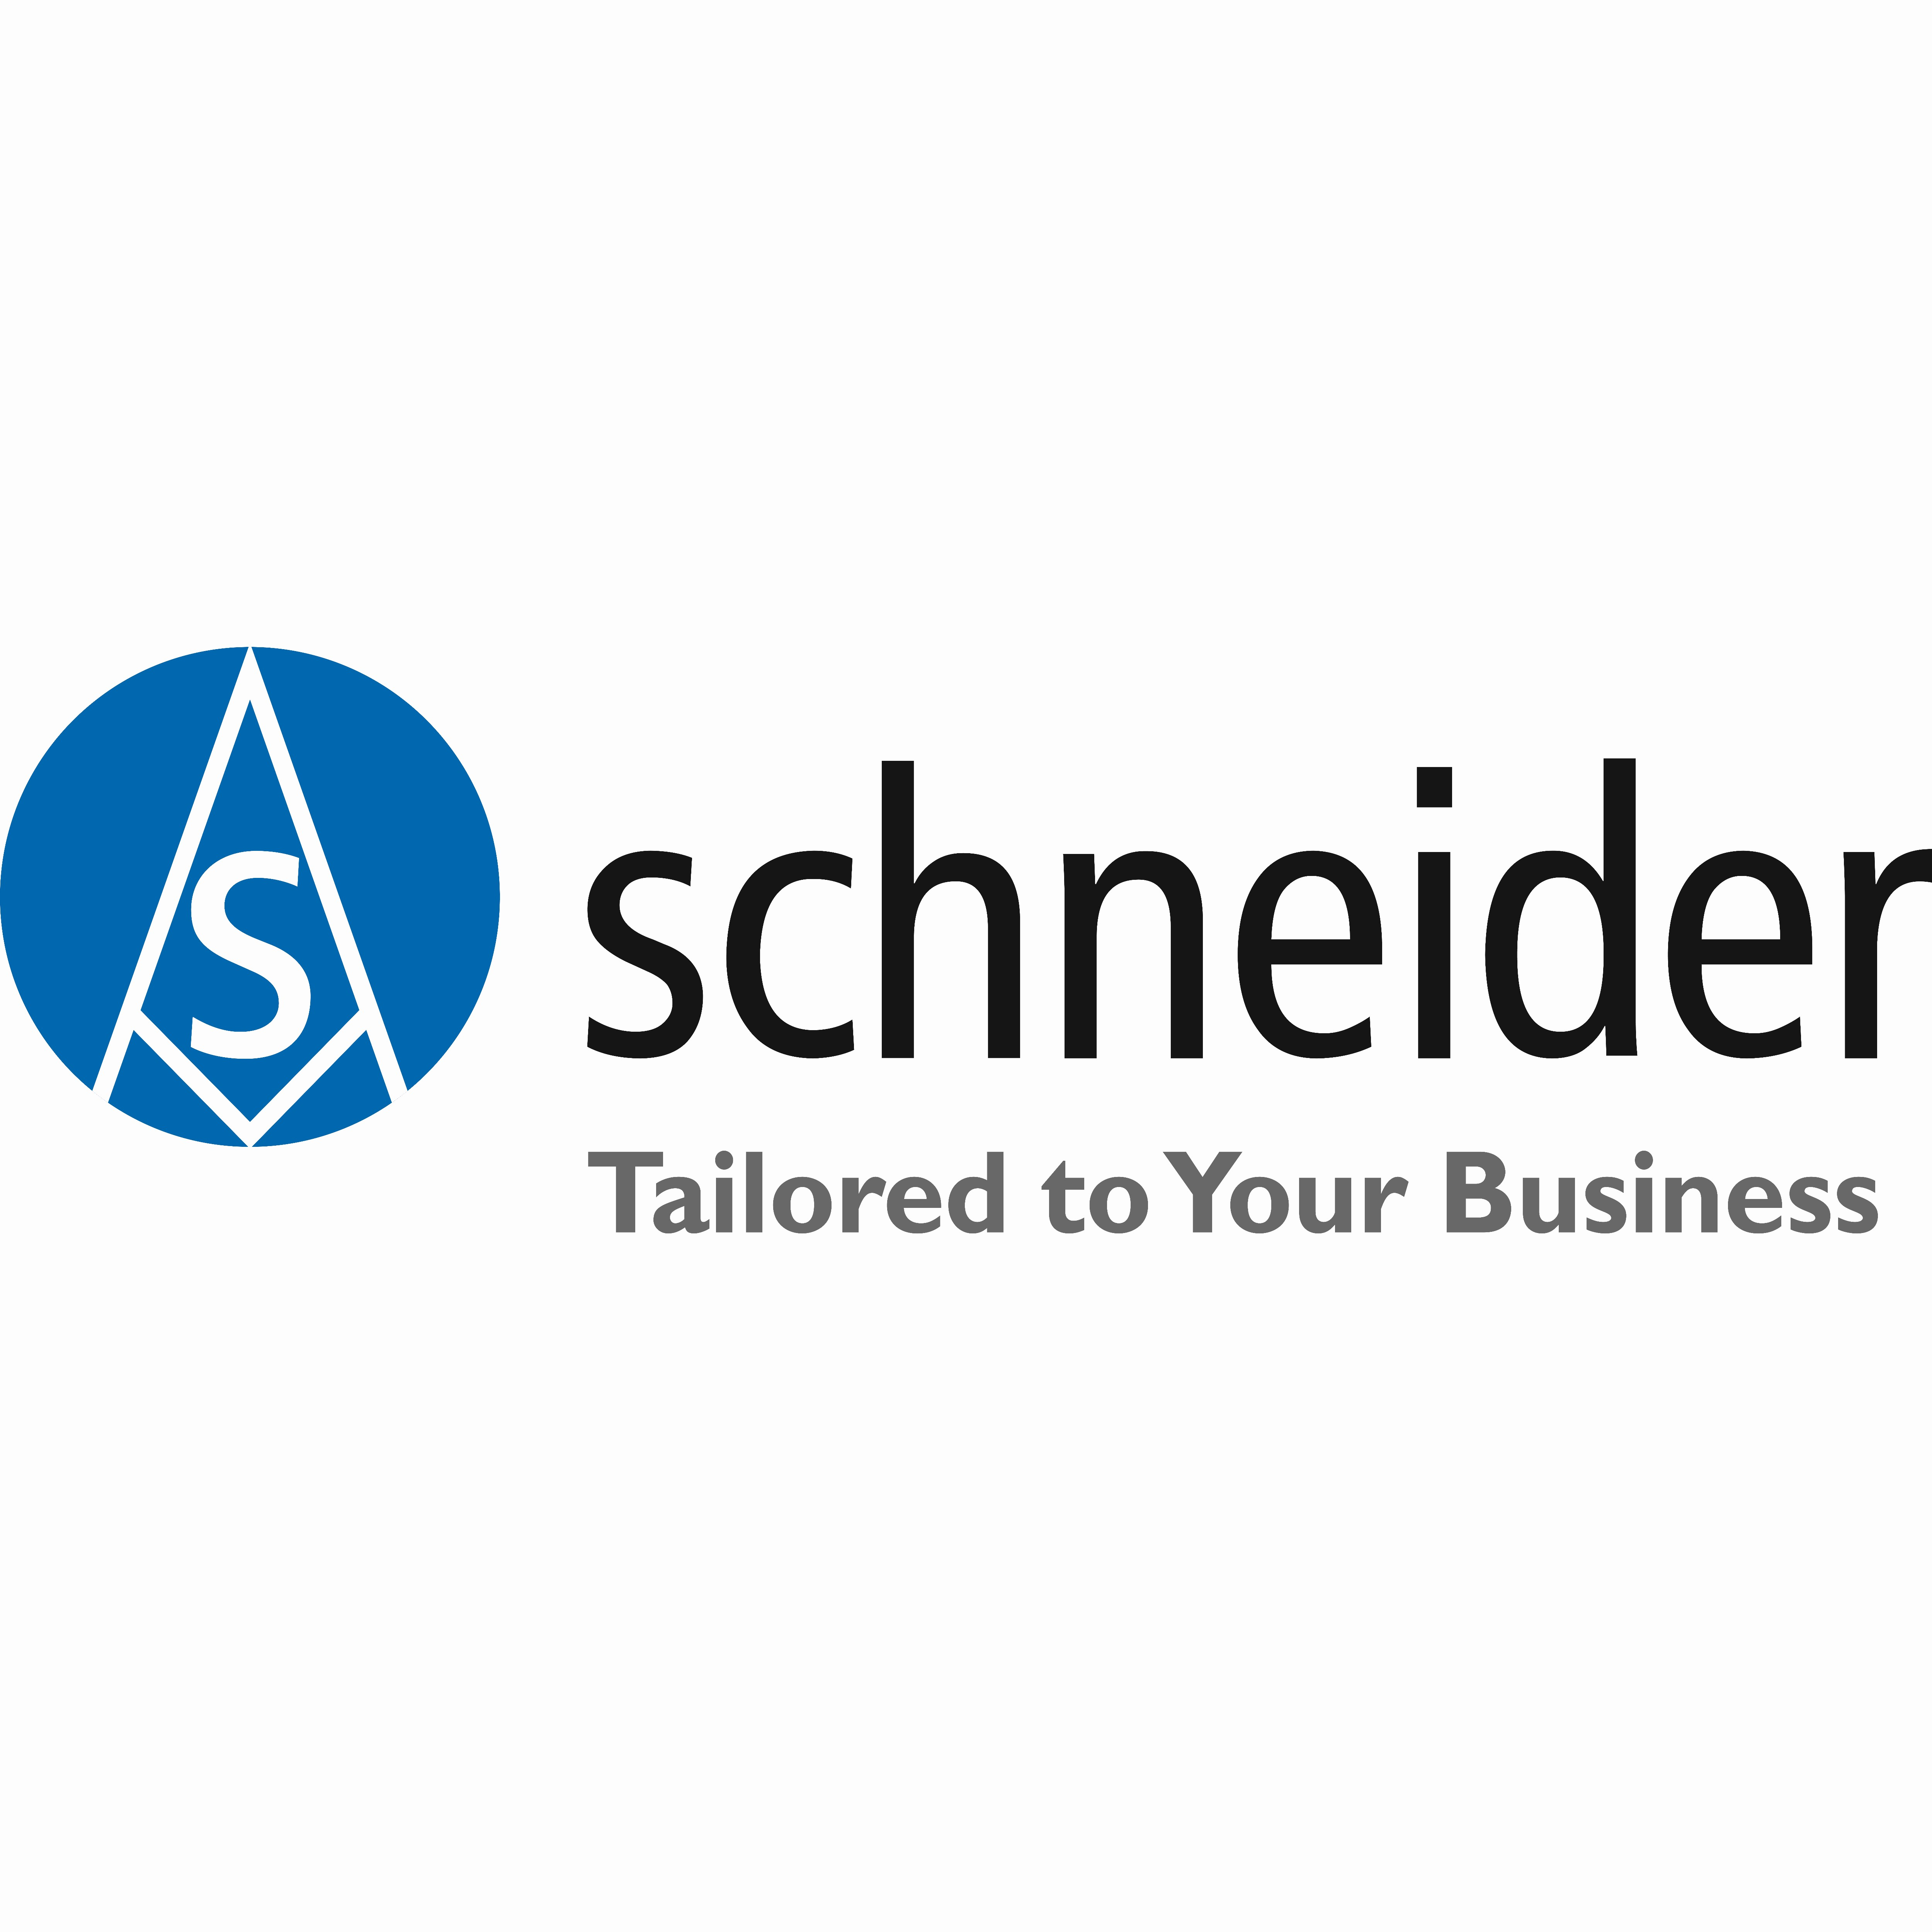 AS SCHNEIDER